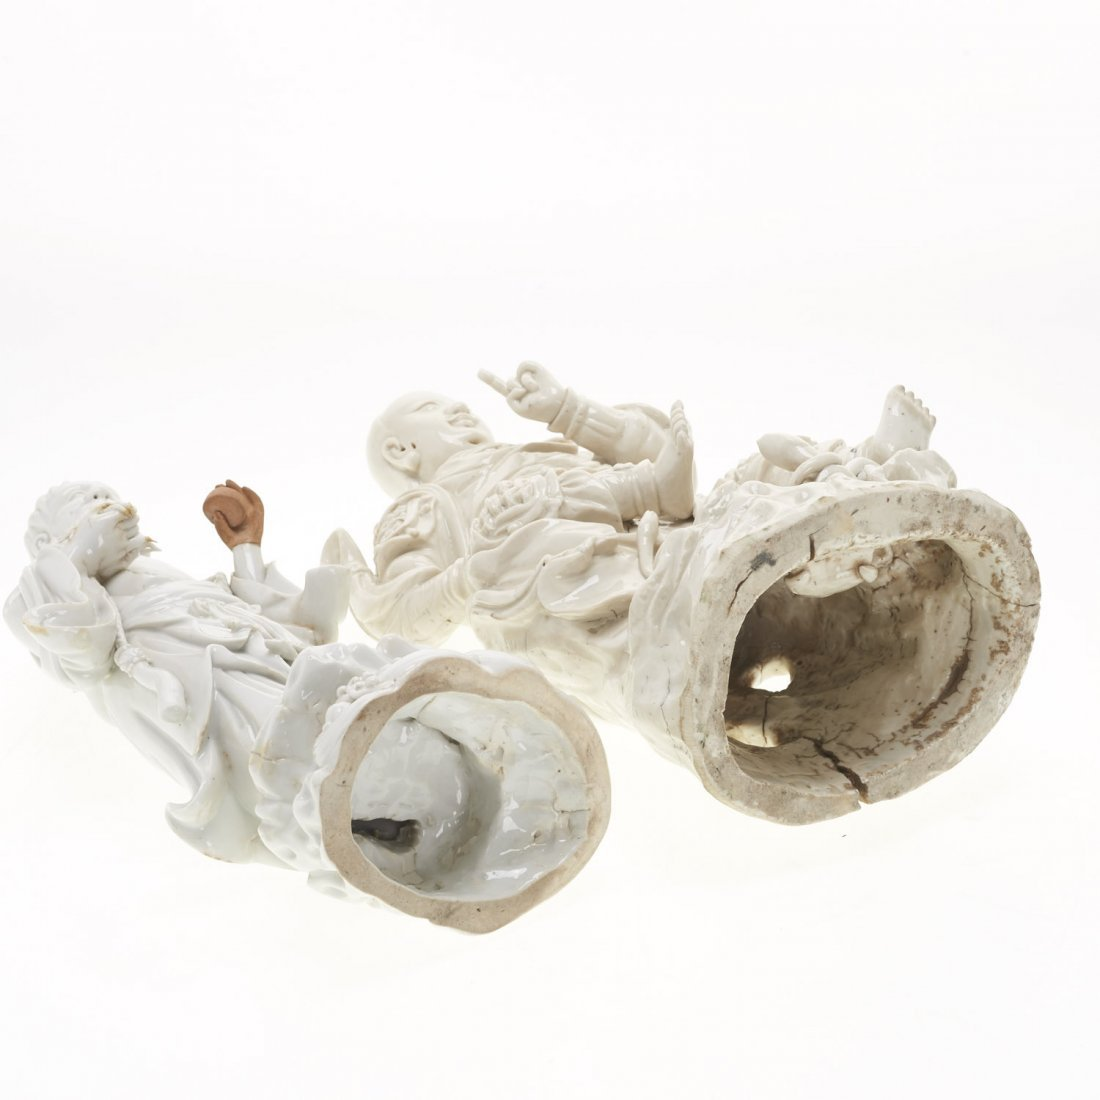 (2) Chinese blanc de chine figures - 10